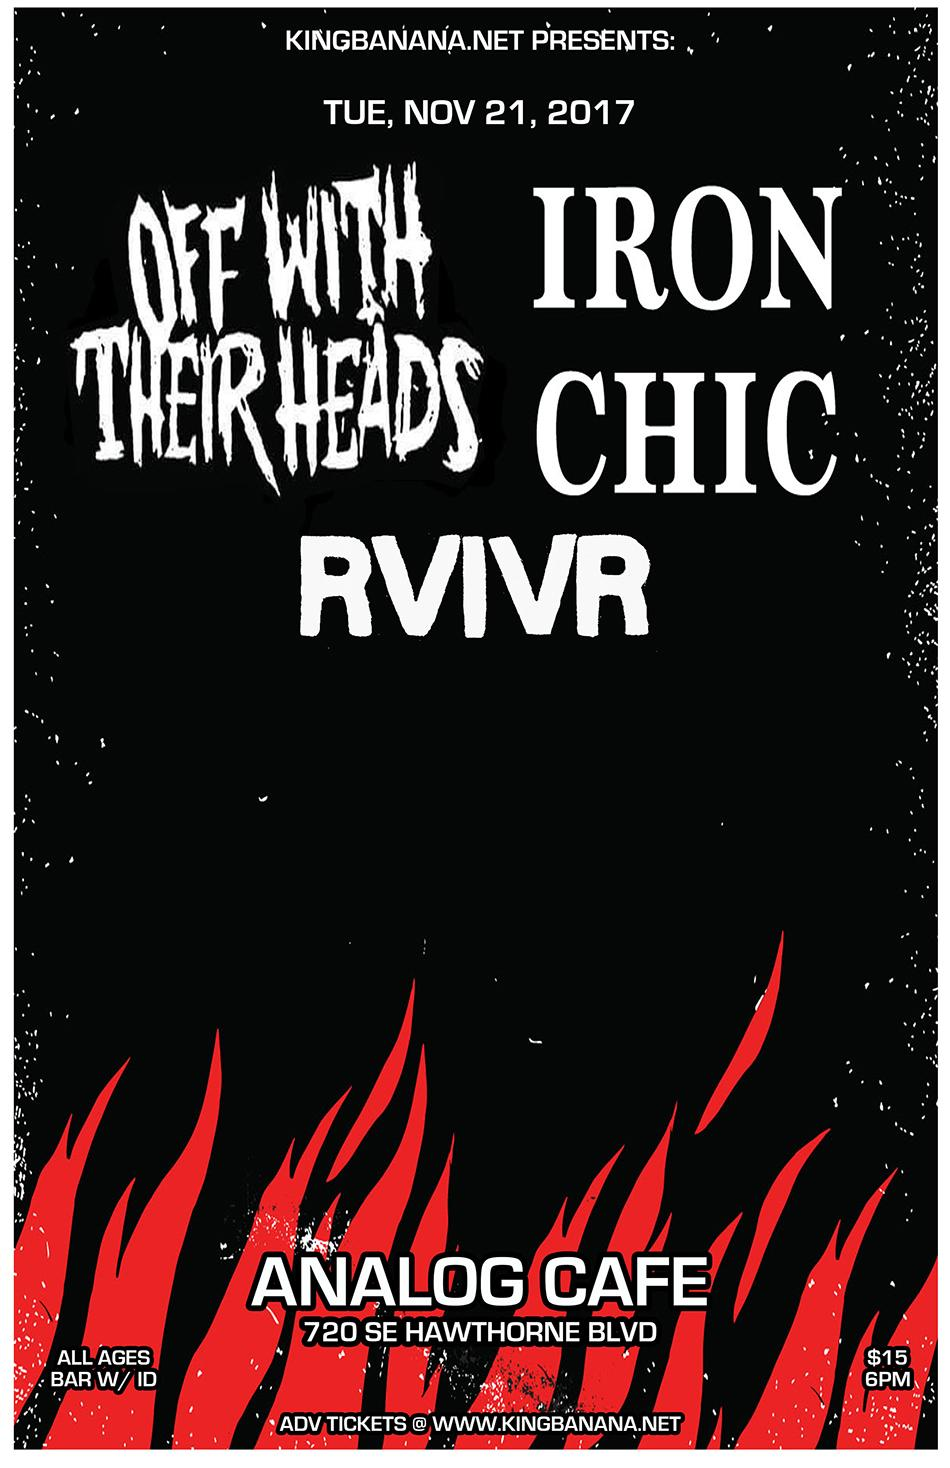 IRON CHIC / OFF WITH THEIR HEADS w/ special guest RVIVR